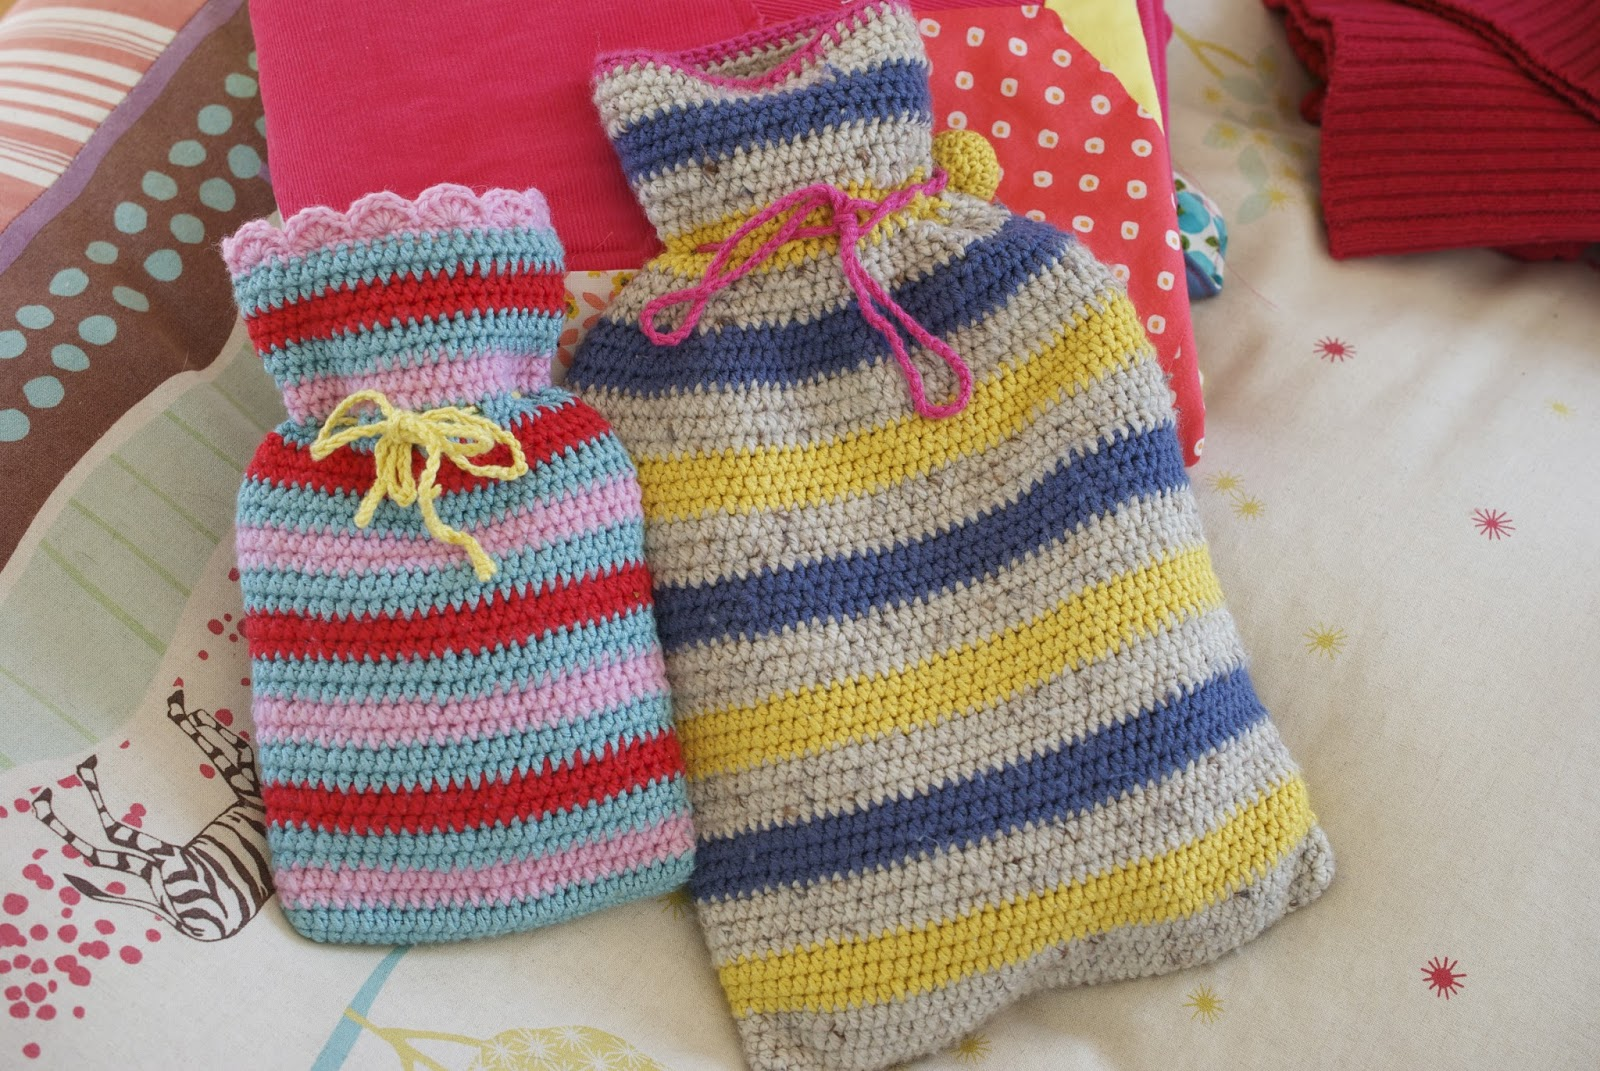 Greedy For Colour: Hot Water Bottles and Watercolours!